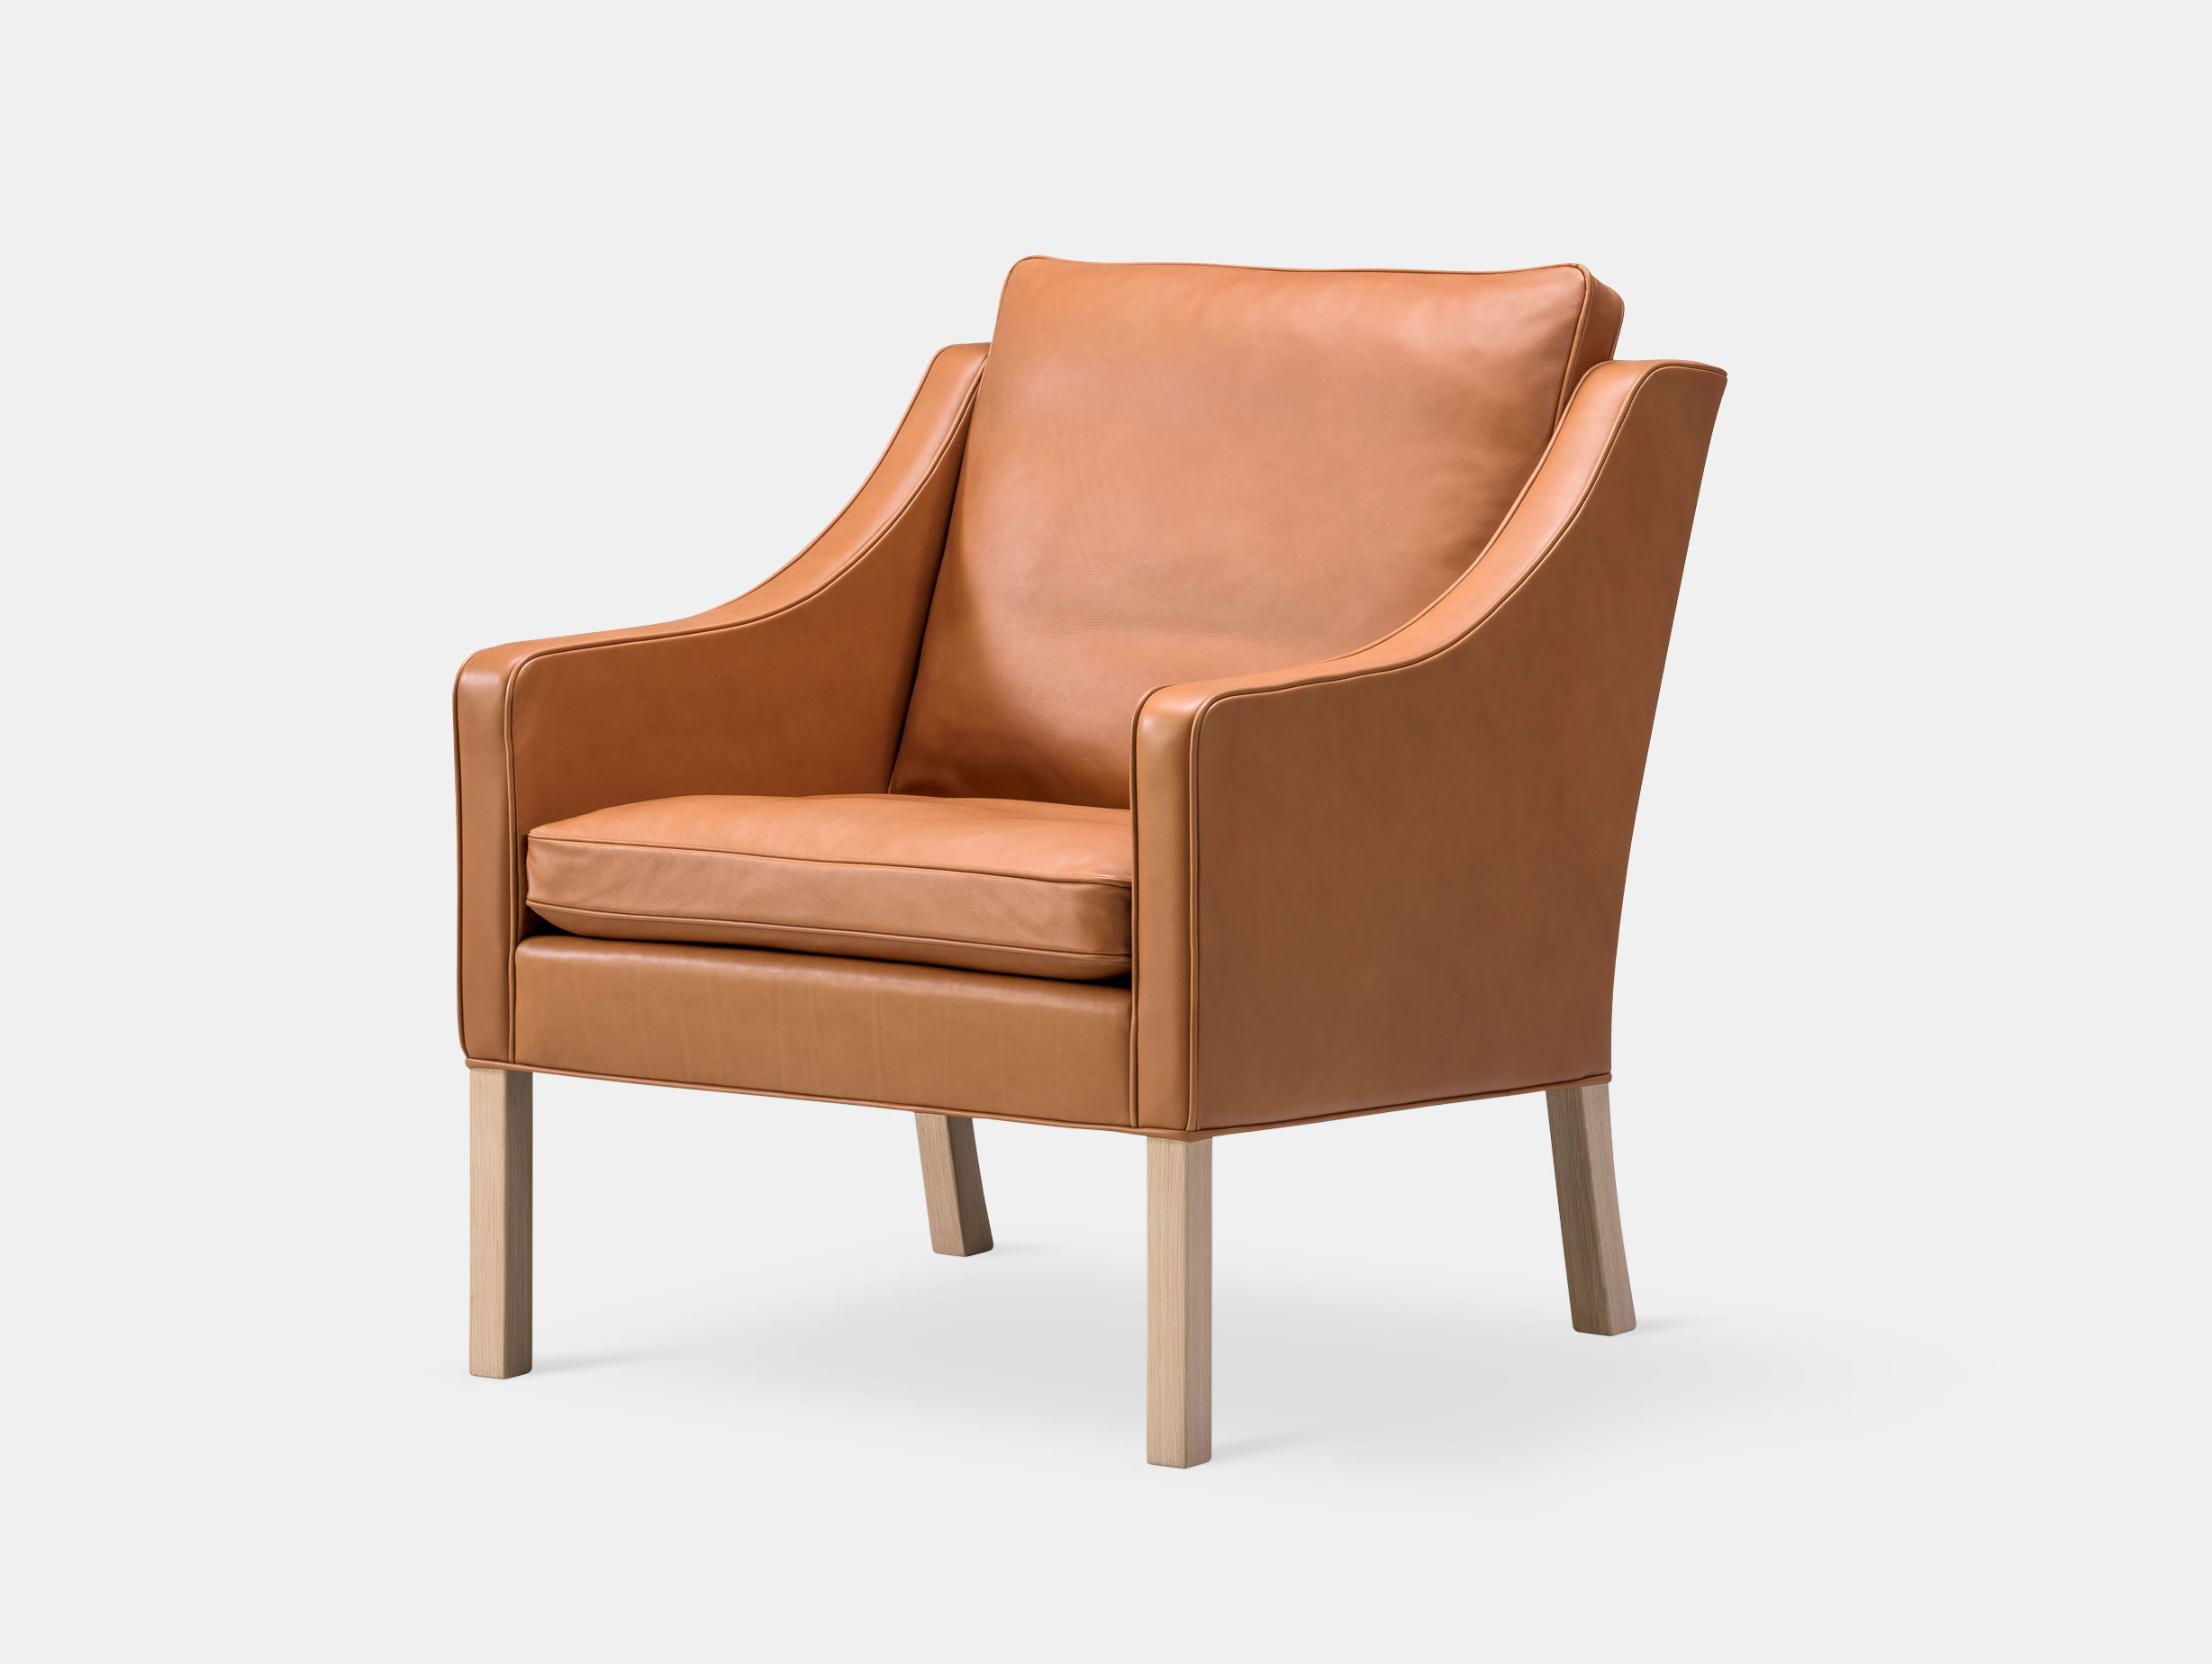 Fredericia 2207 Lounge Chair Oak Borge Mogensen